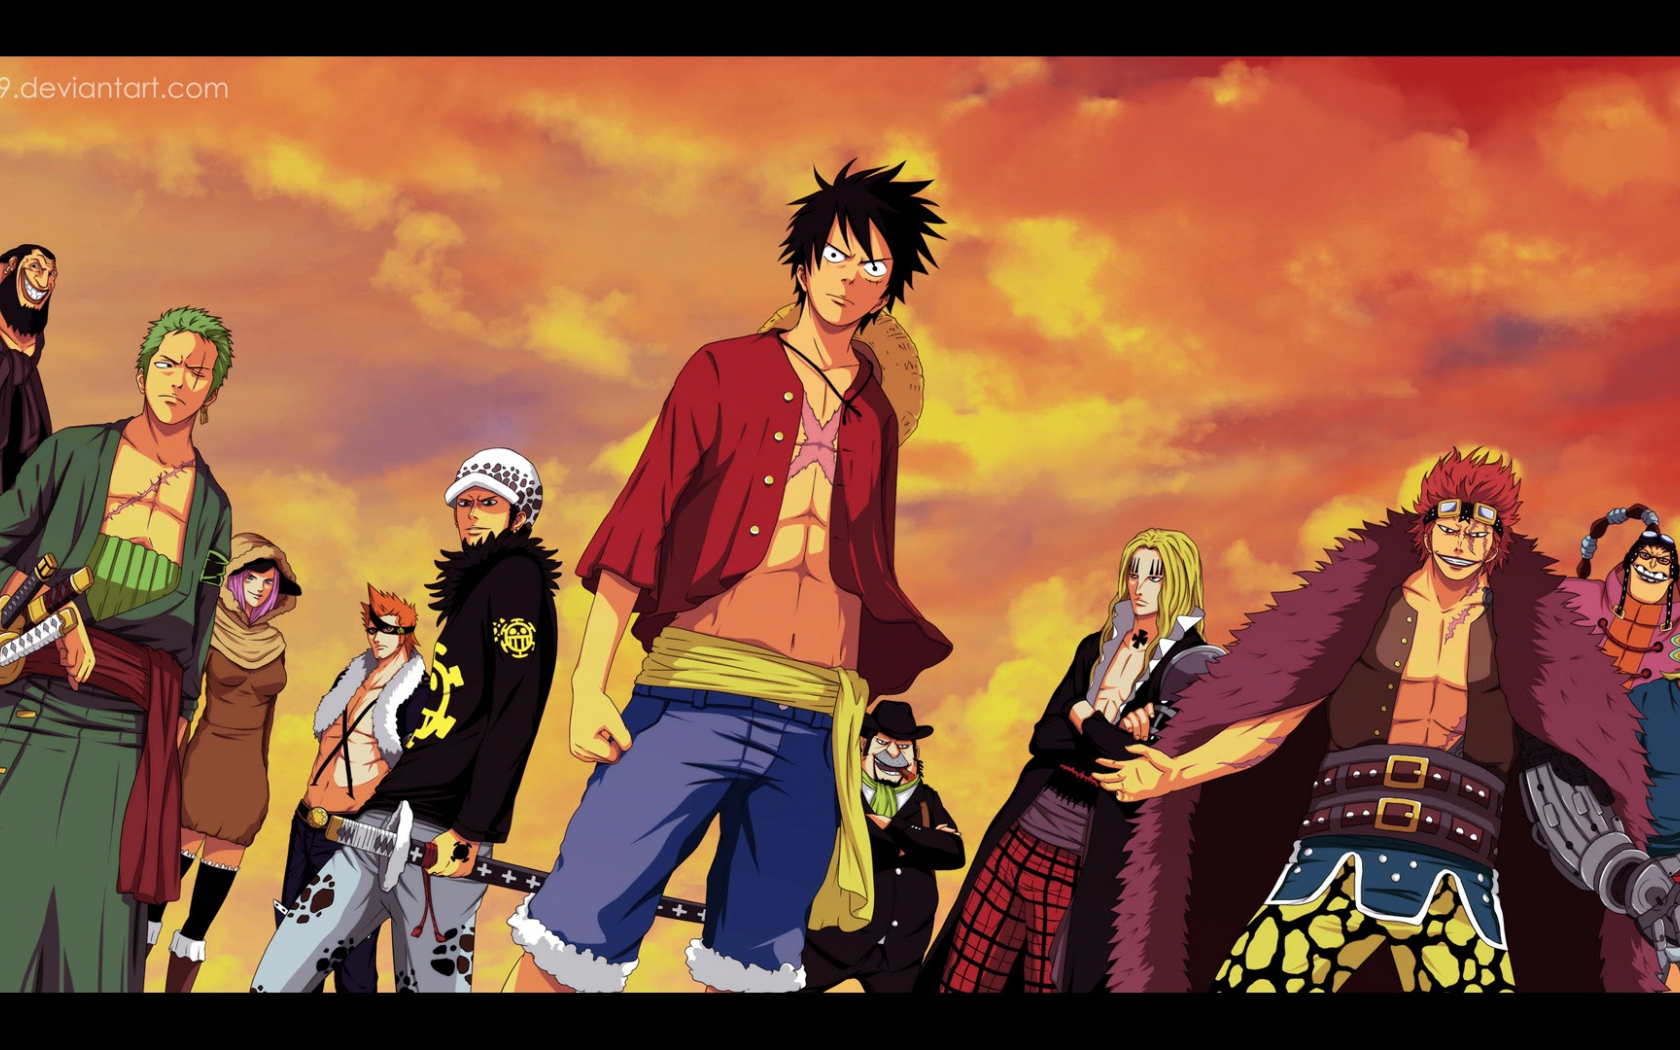 Free Download One Piece Wallpapers High Quality Download 1920x1080 For Your Desktop Mobile Tablet Explore 75 One Piece Hd Wallpapers One Piece Wallpaper 1920x1080 Cool One Piece Wallpapers Anime